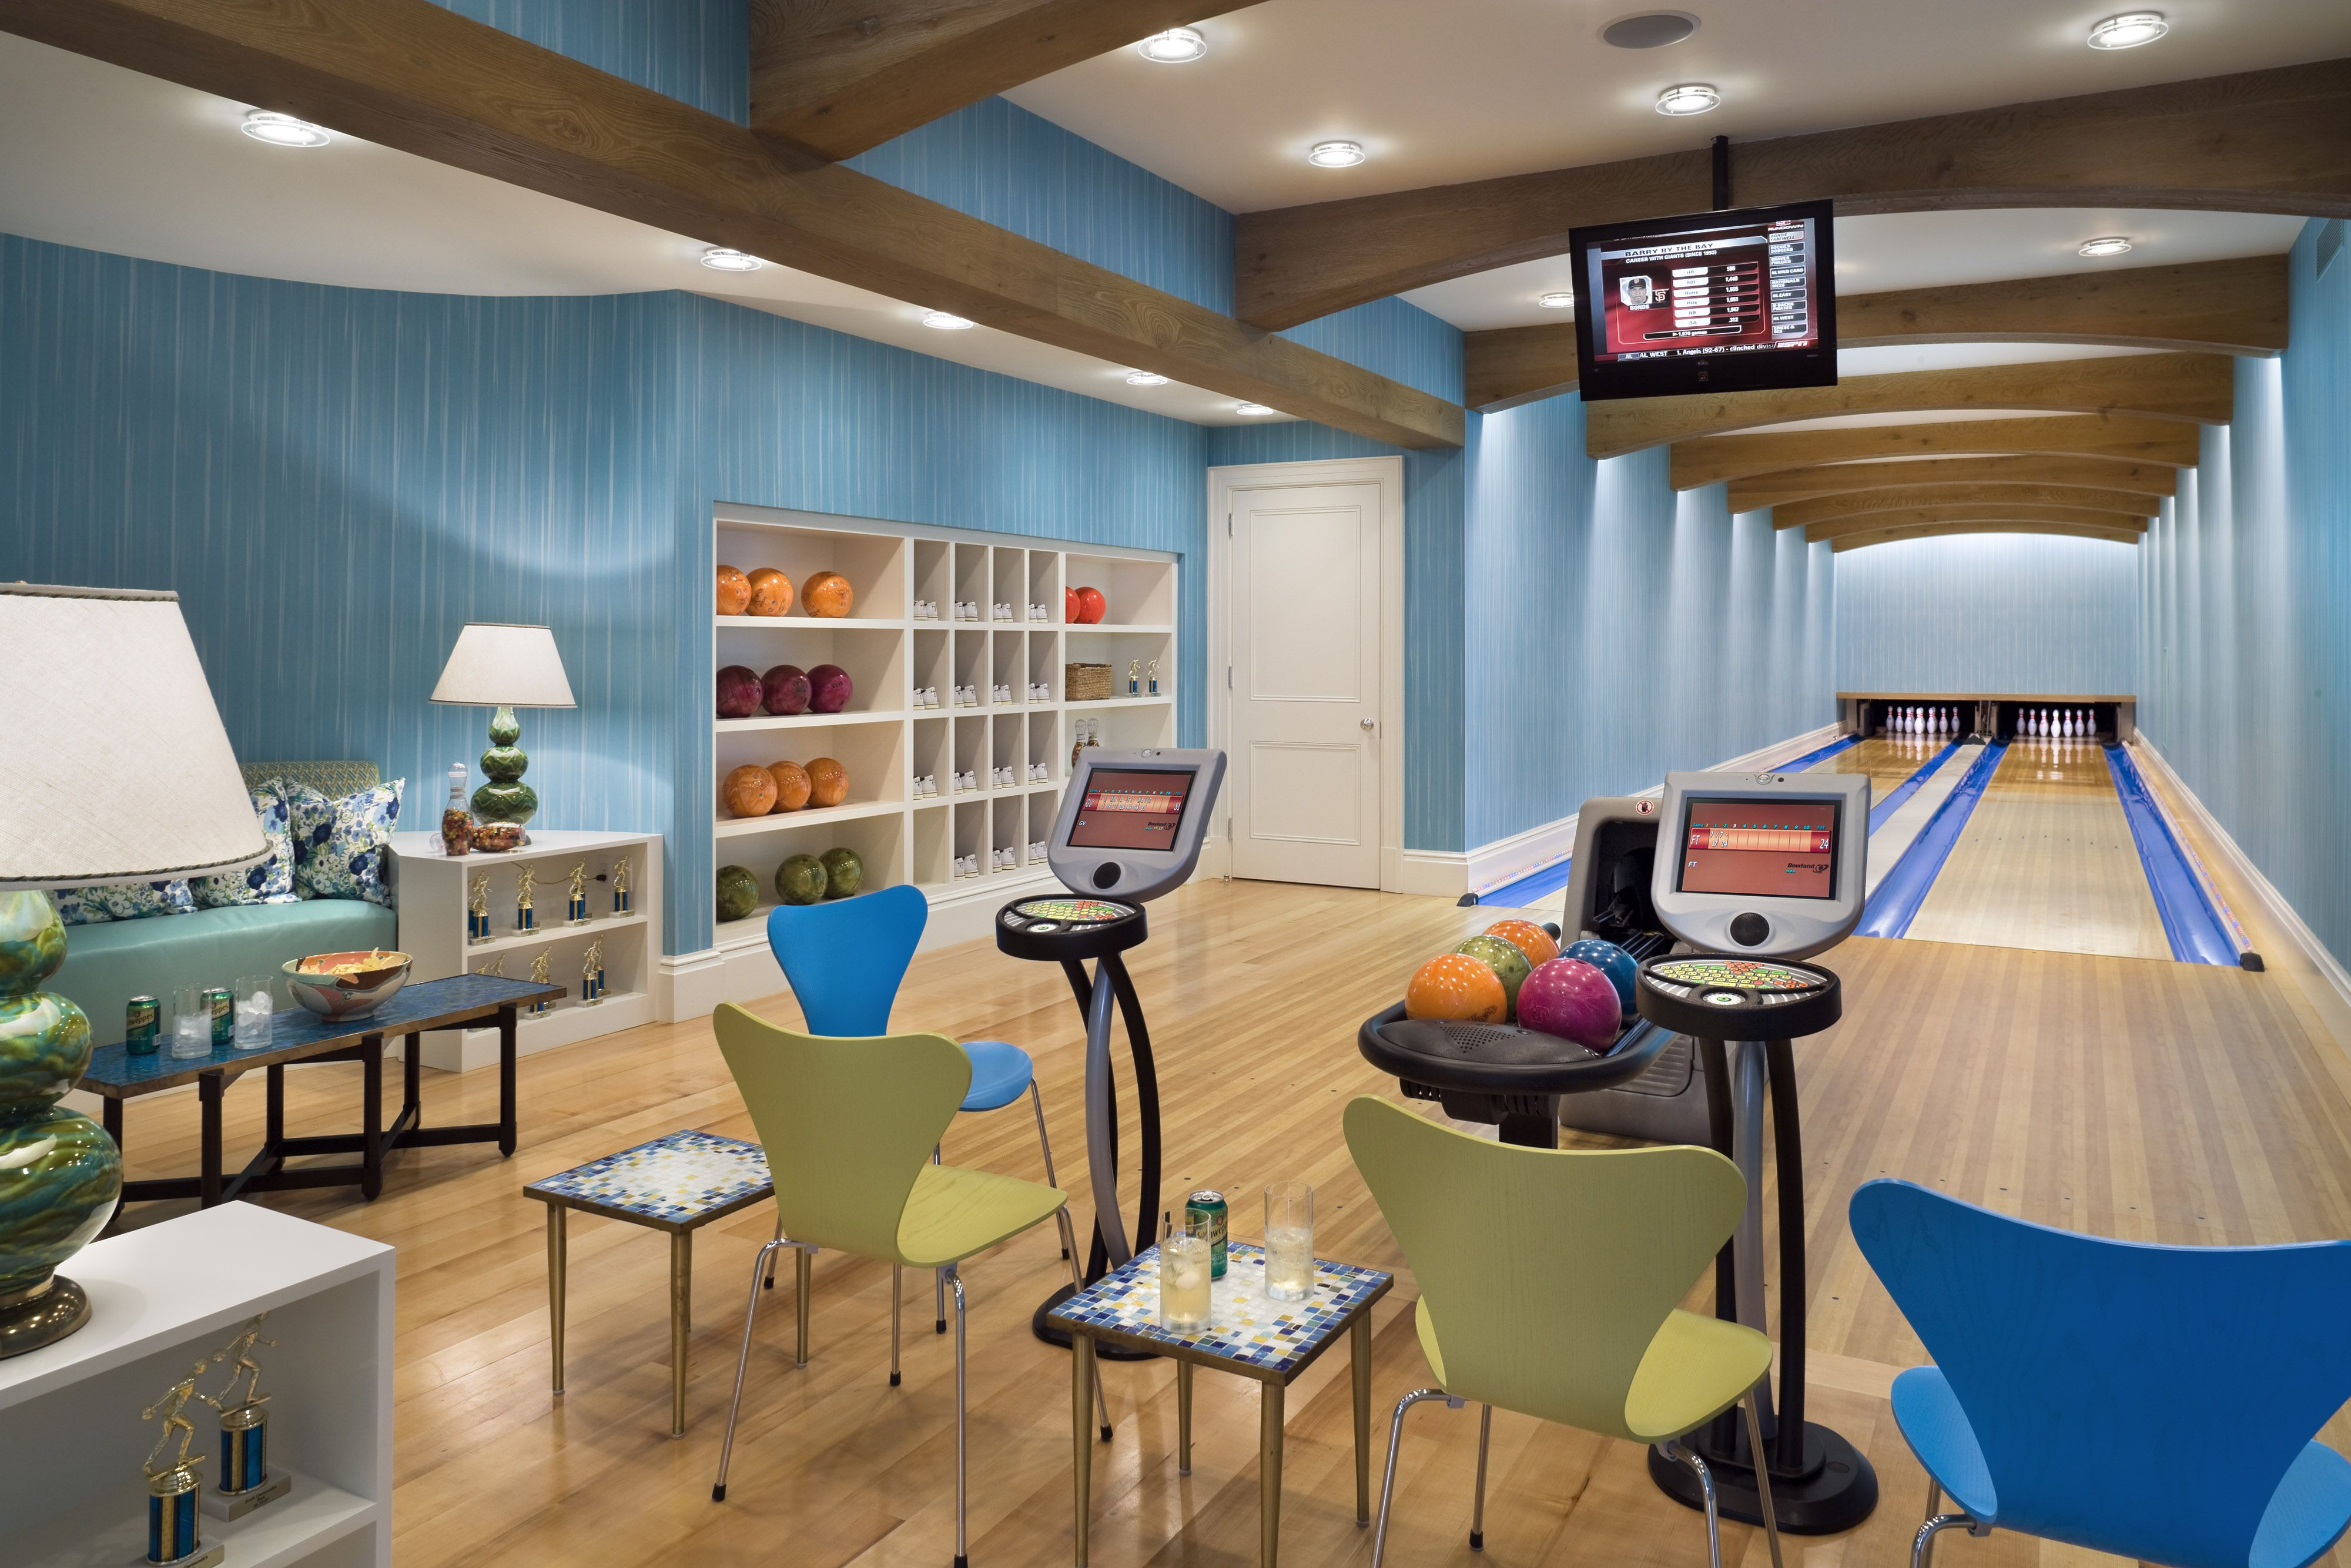 Bowling Alley at a seaside house by Robert A M Stern Architects